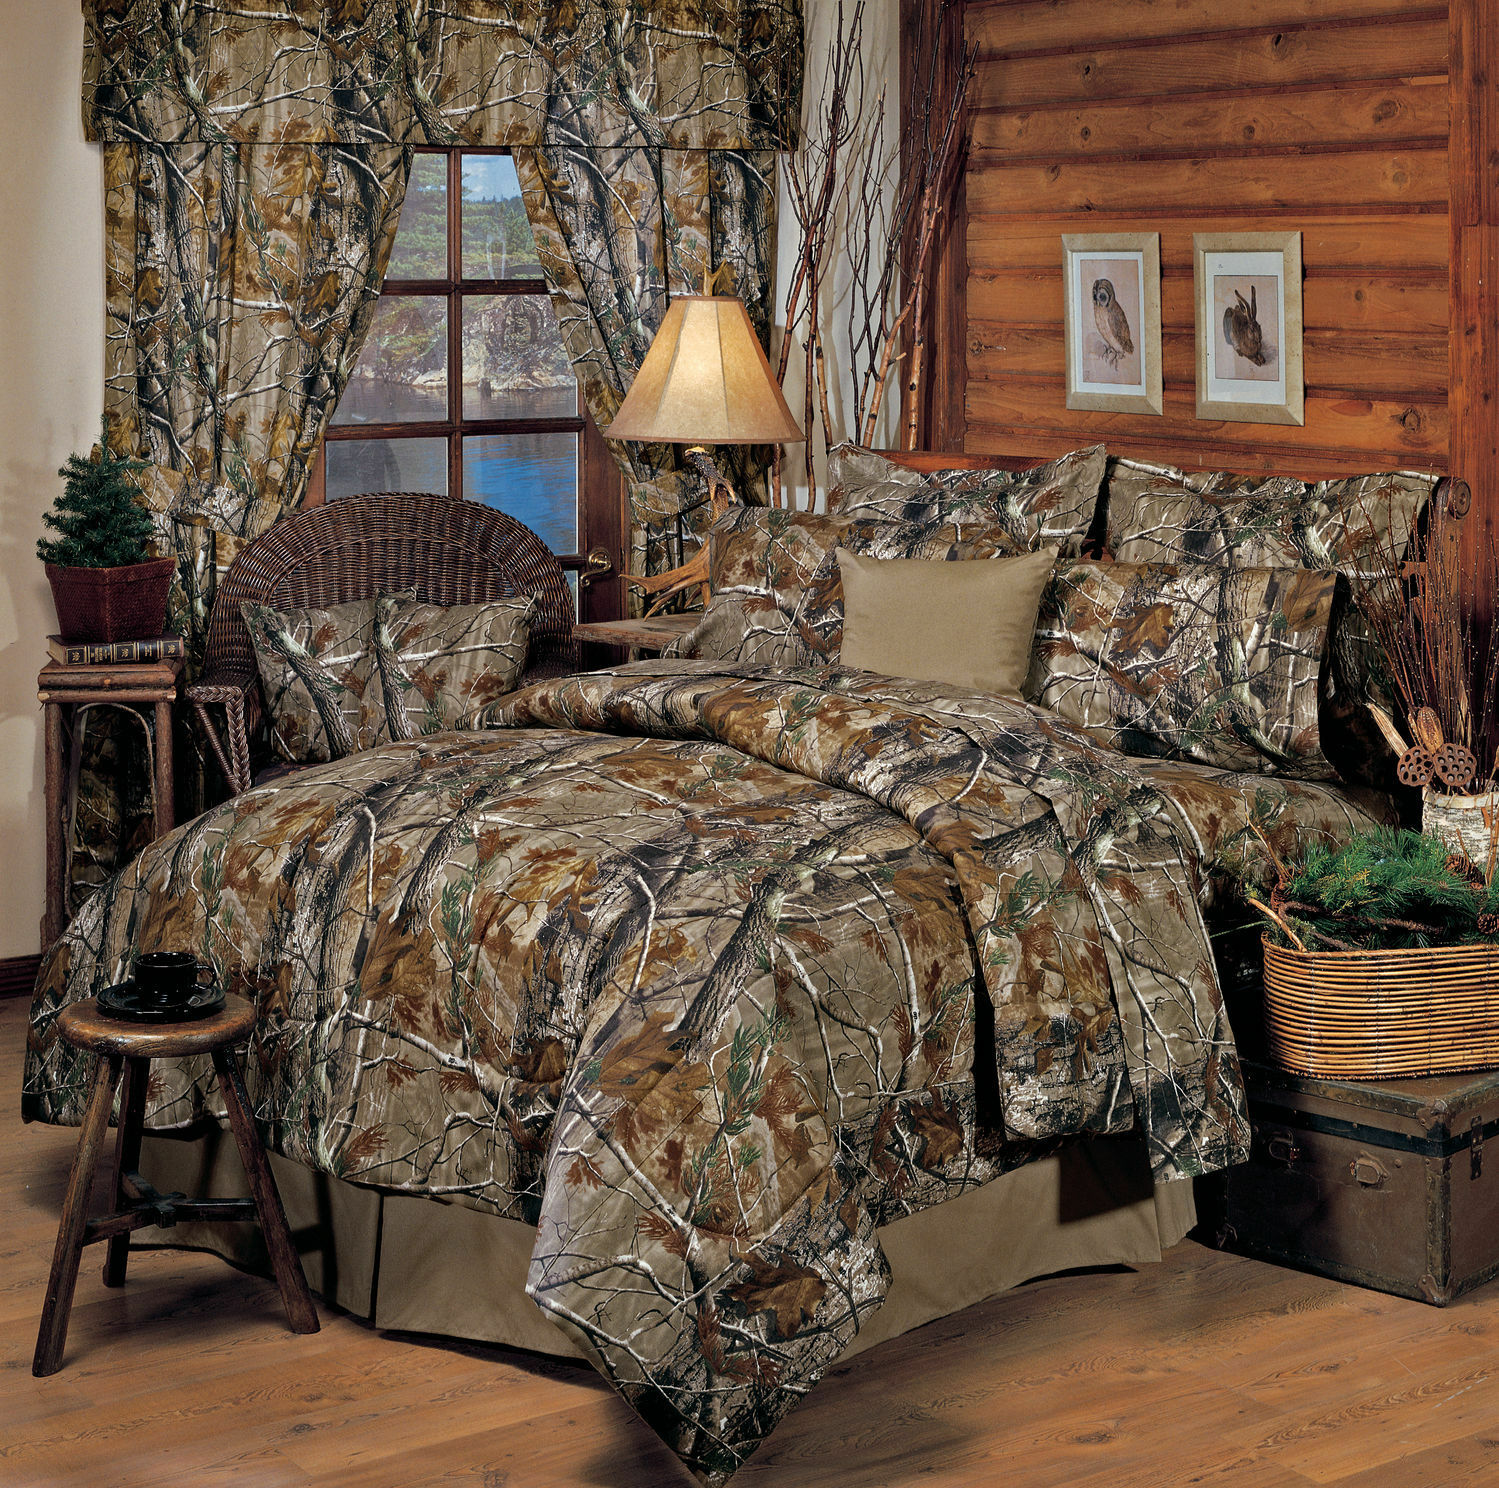 Realtree Camo Camouflage Comforter Set - Bedding Shams Skirt